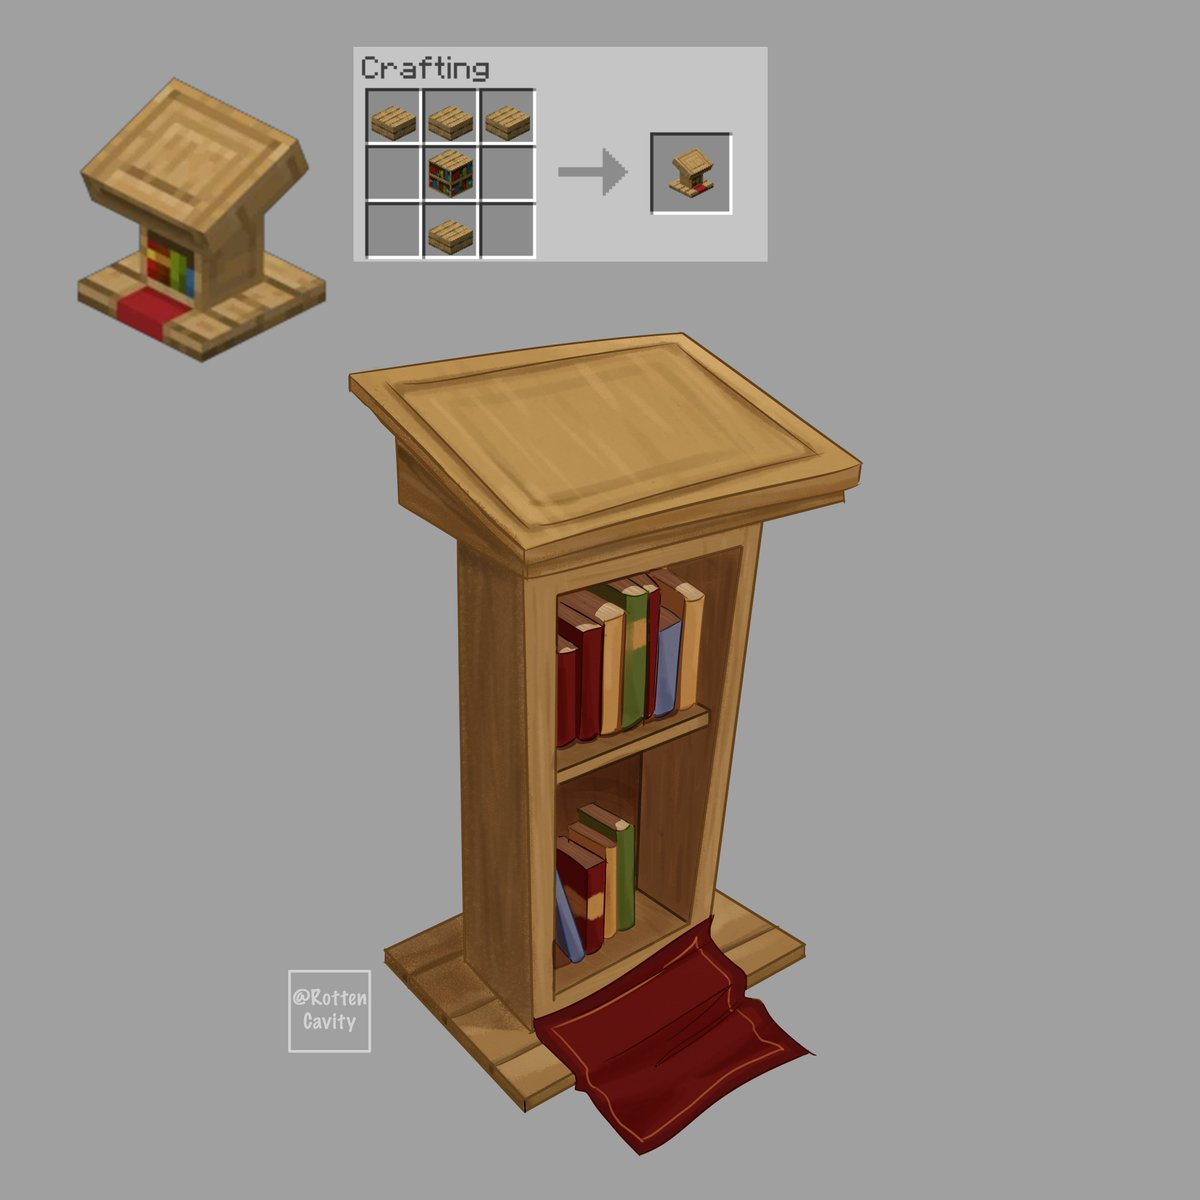 Drawing a realistic minecraft block every day. Day 12, Lectern retweets are appreciated! #minecraft #minecraftfanart #minecraftart #mc #mcfanart